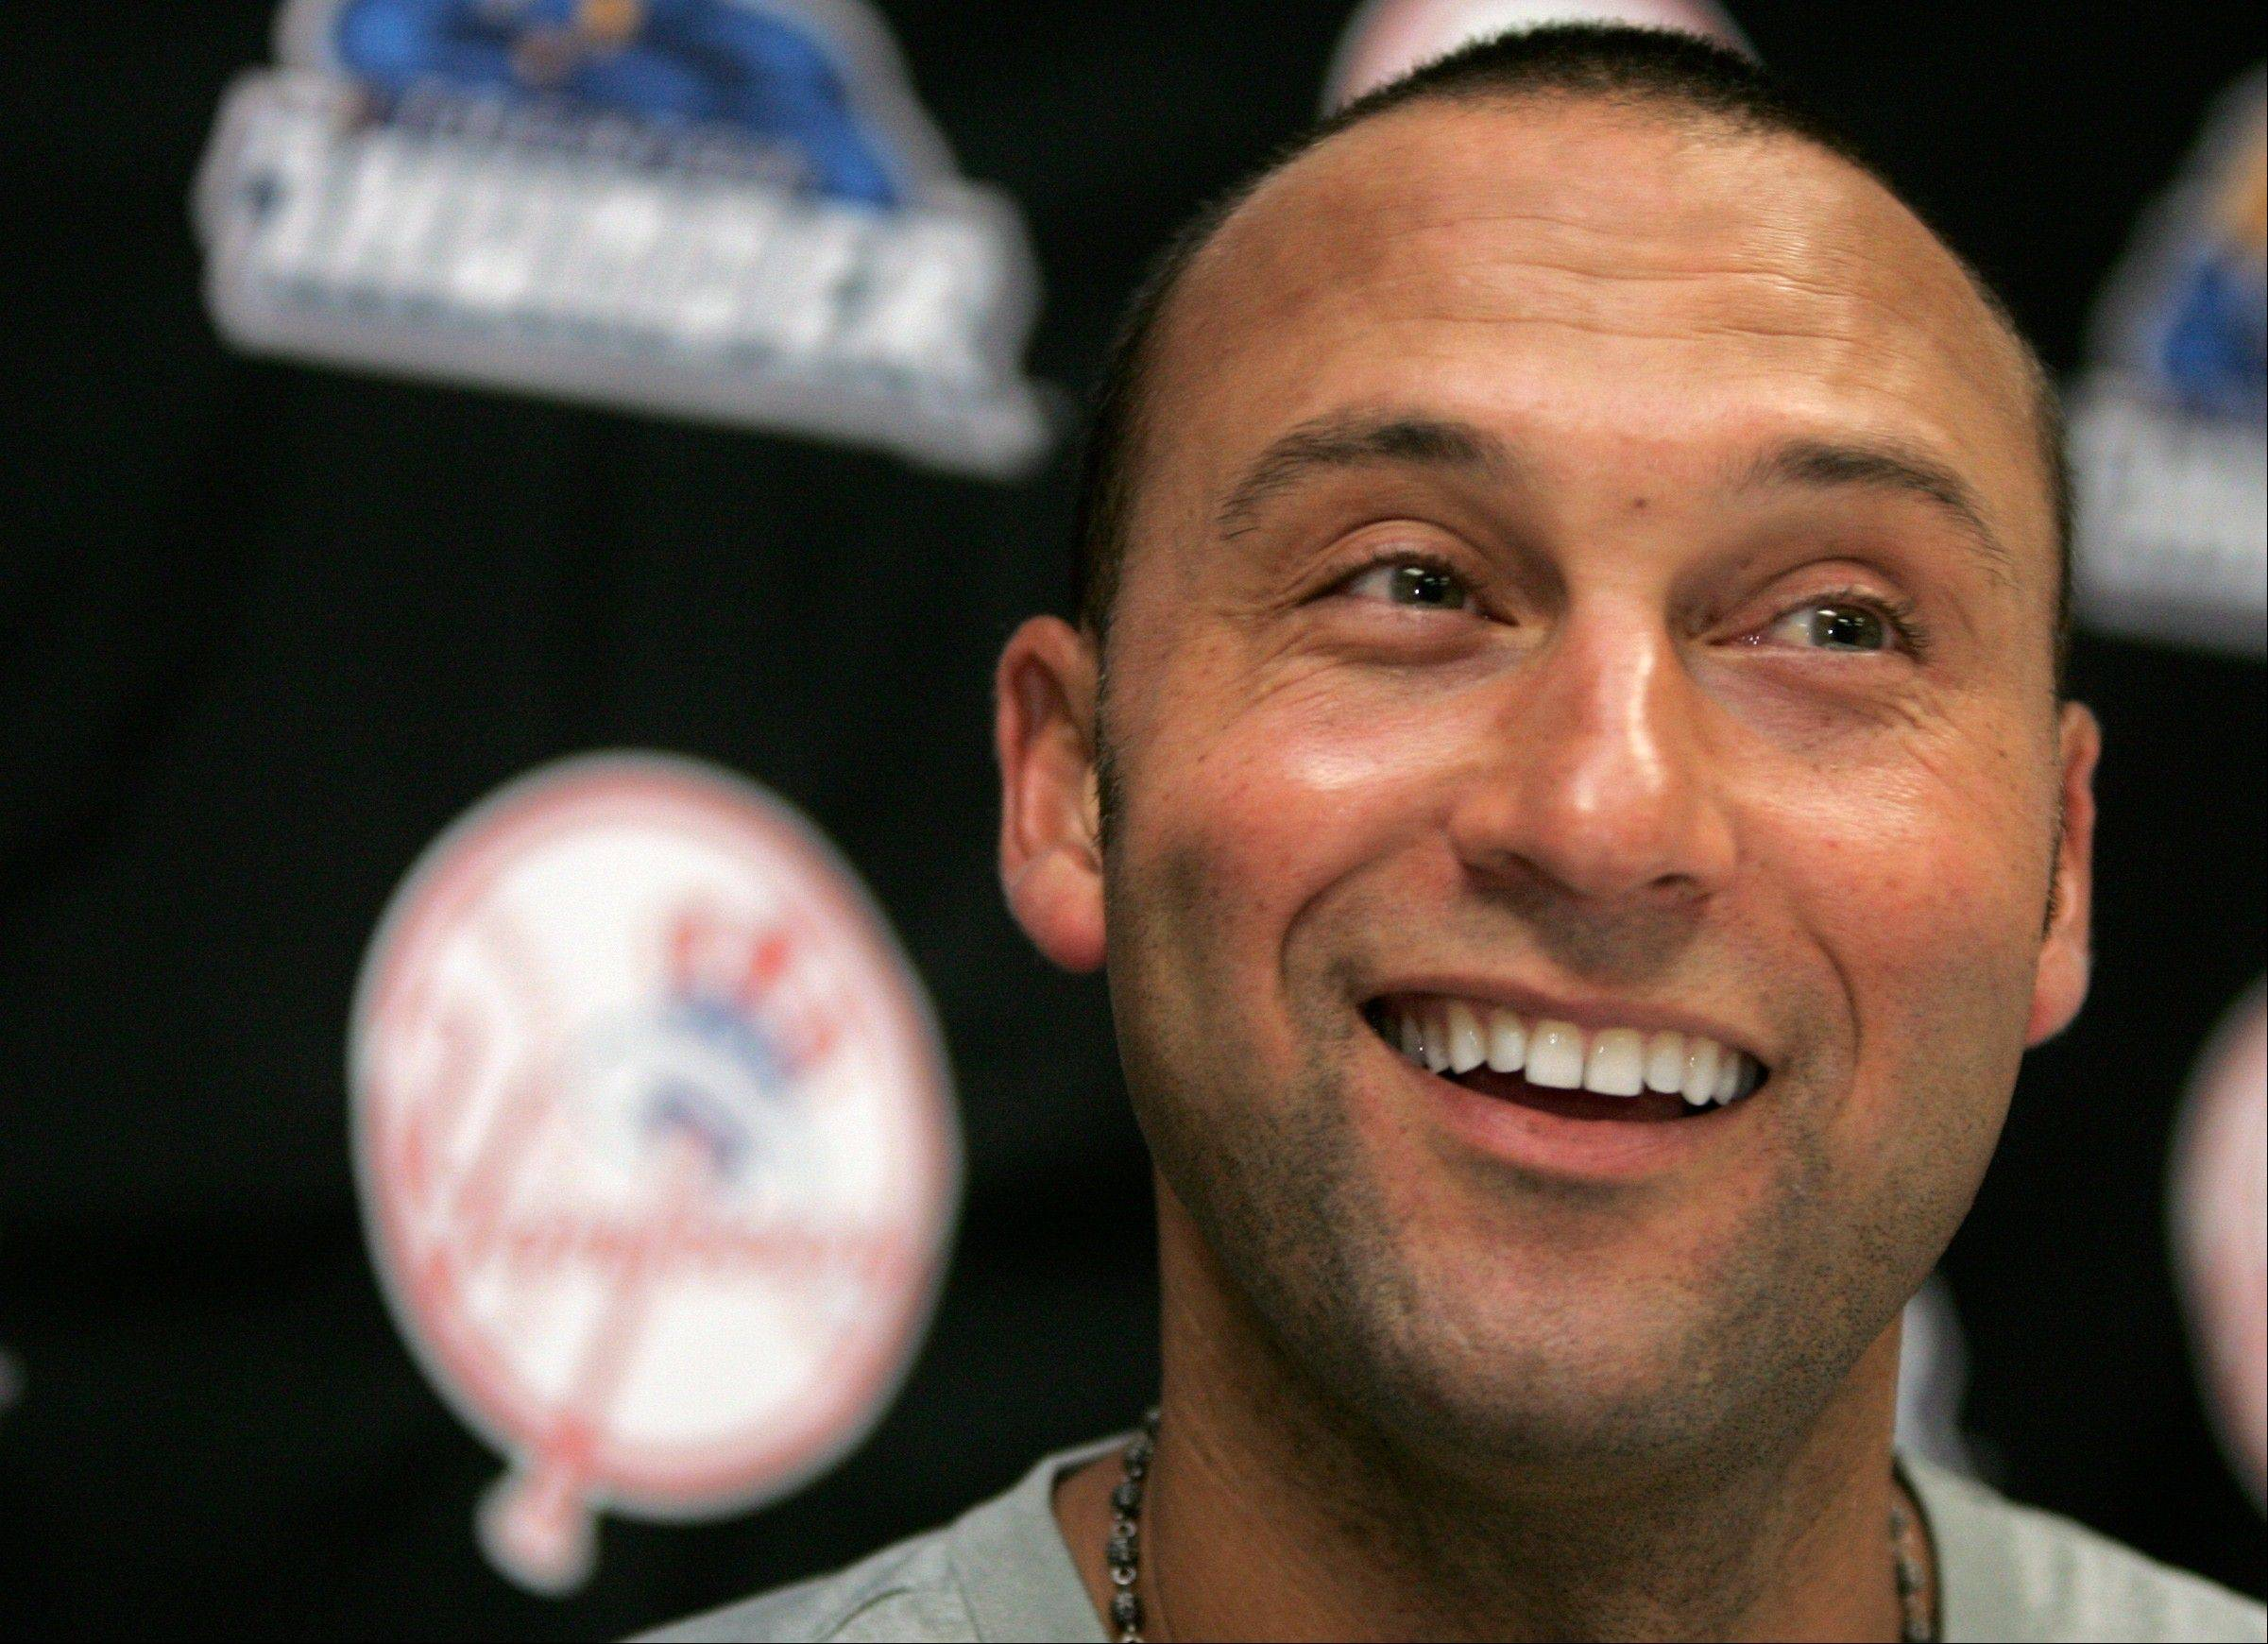 New York Yankees shortstop Derek Jeter is set to rejoin the Yankees in Cleveland on today in his return from a calf injury.